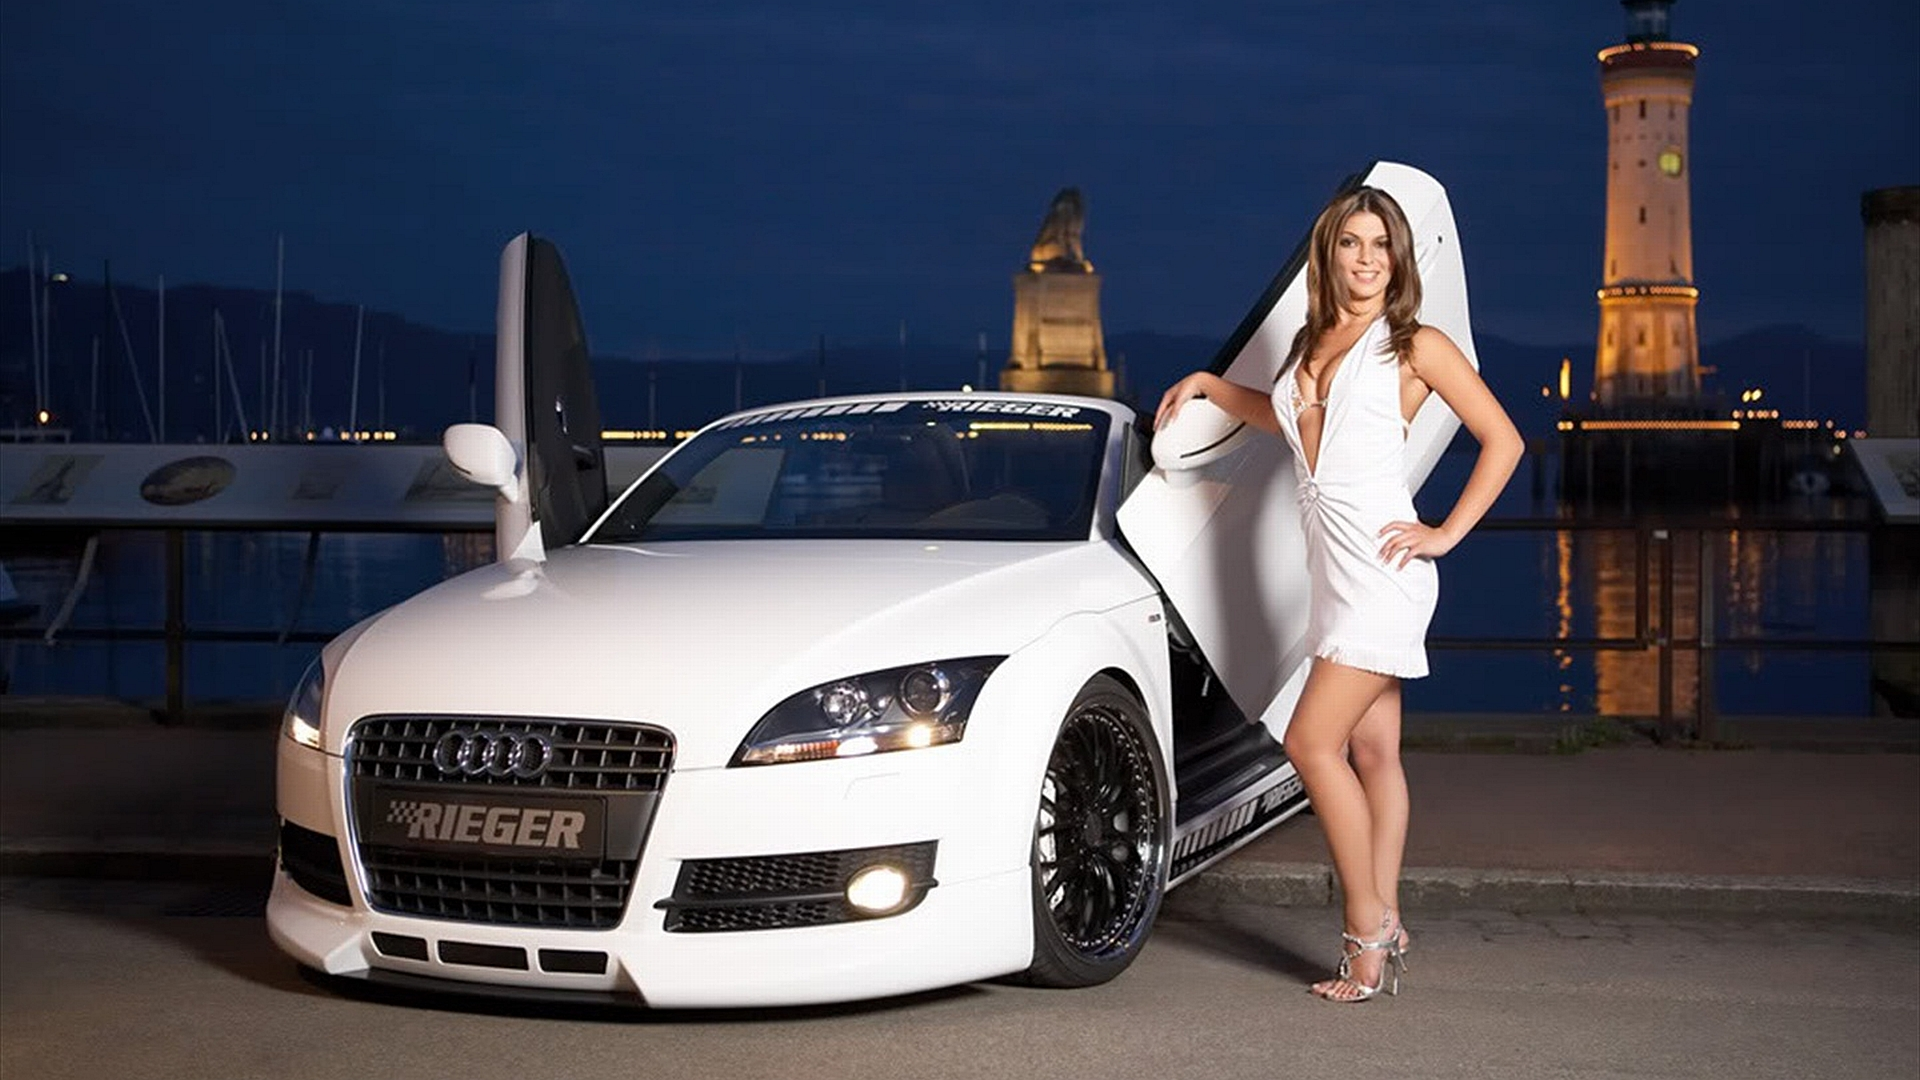 Girls & Cars Full HD Wallpaper and Background Image | 1920x1080 | ID:169140